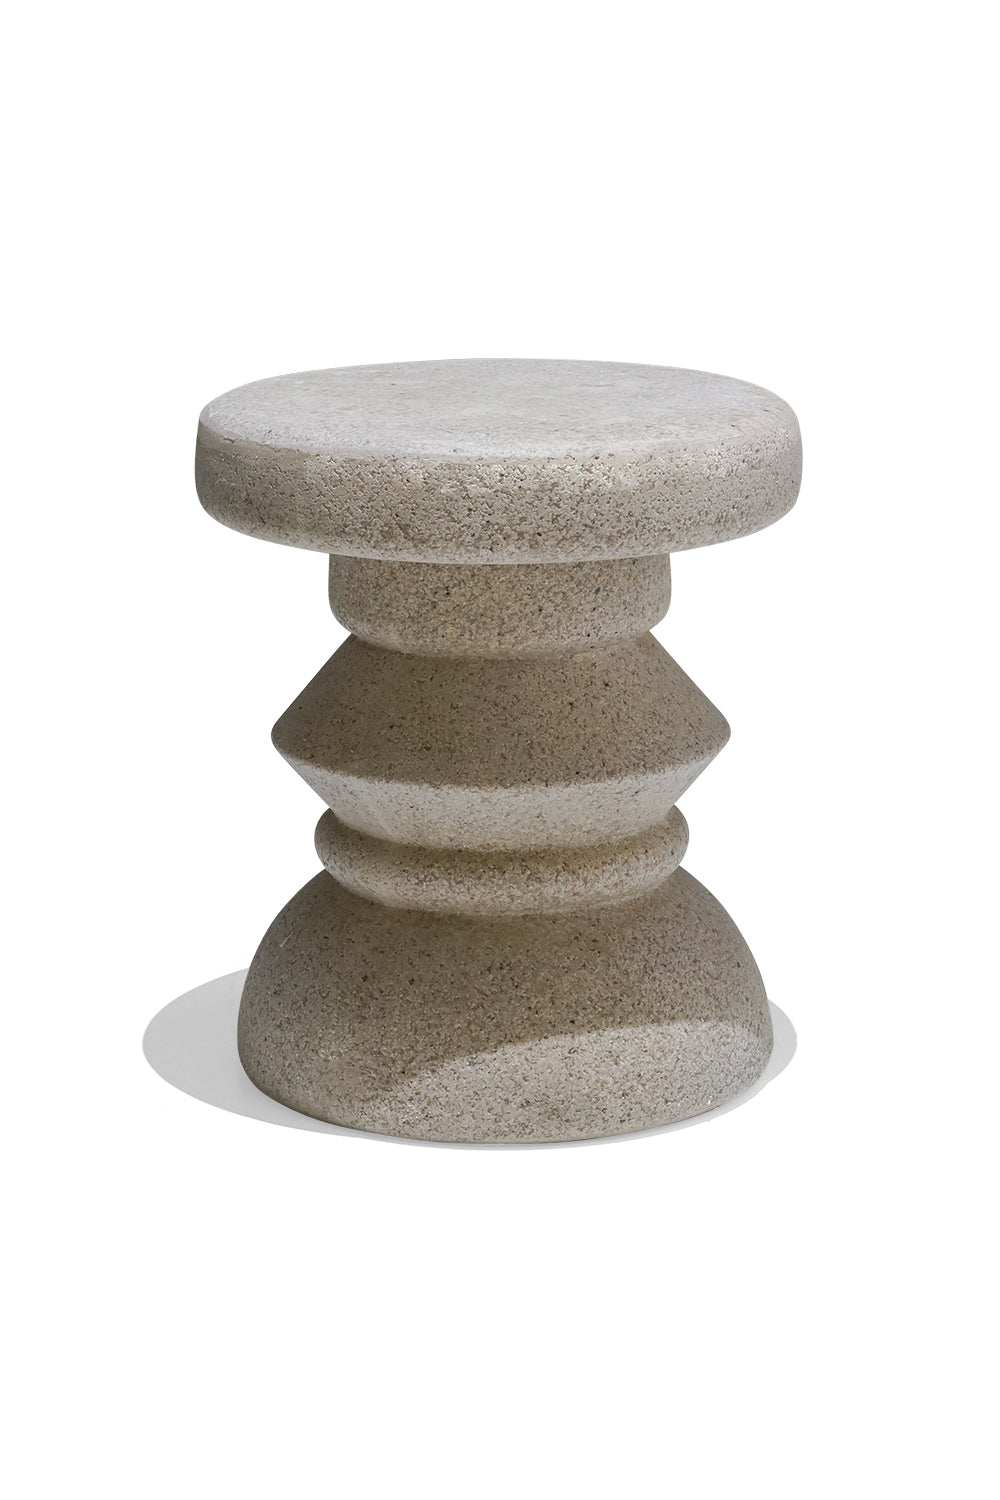 SAVANNAH stool